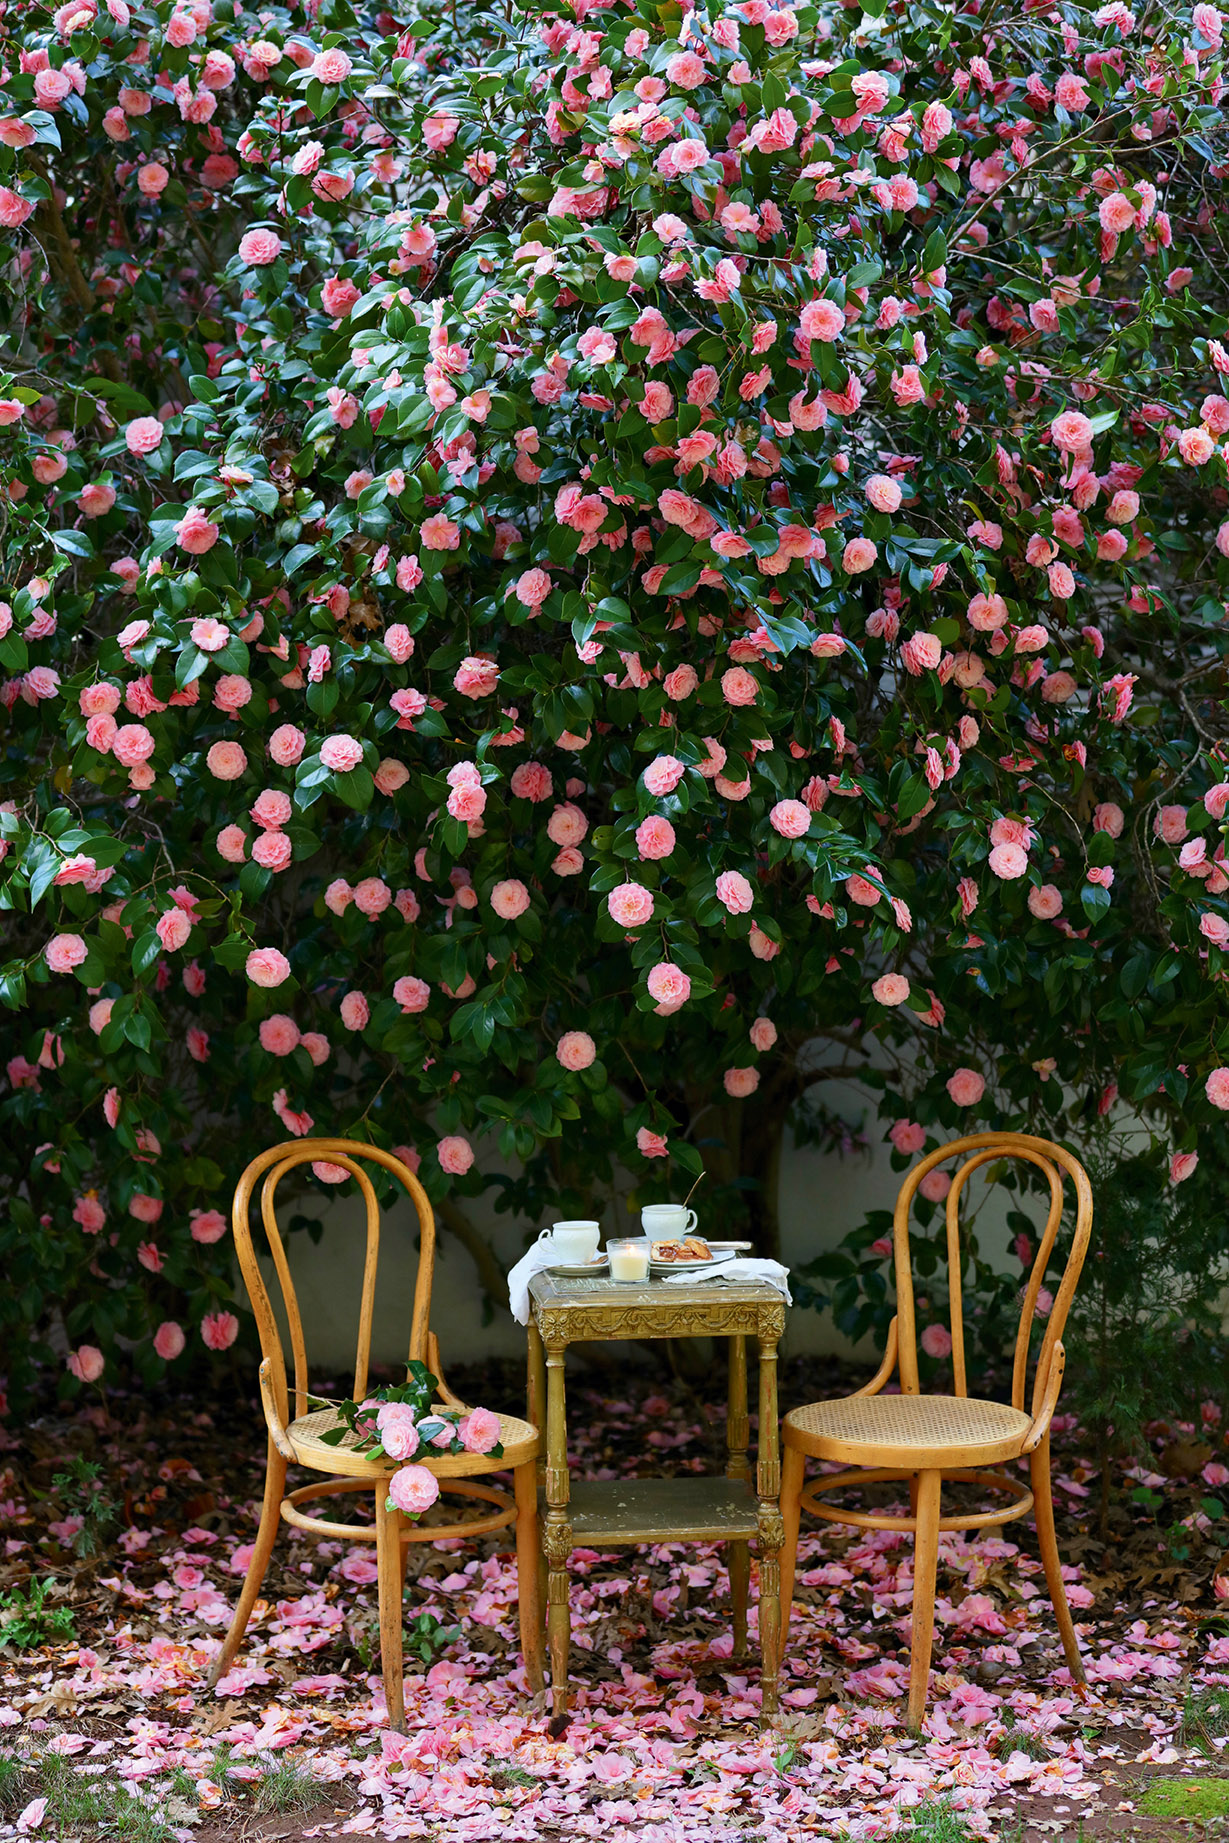 pink flowers under a tree seating for two charcuterie board Photograph from French Country Cottage Inspired Gatherings by Courtney Allison. Reprinted by permission of Gibbs Smith Publishing.